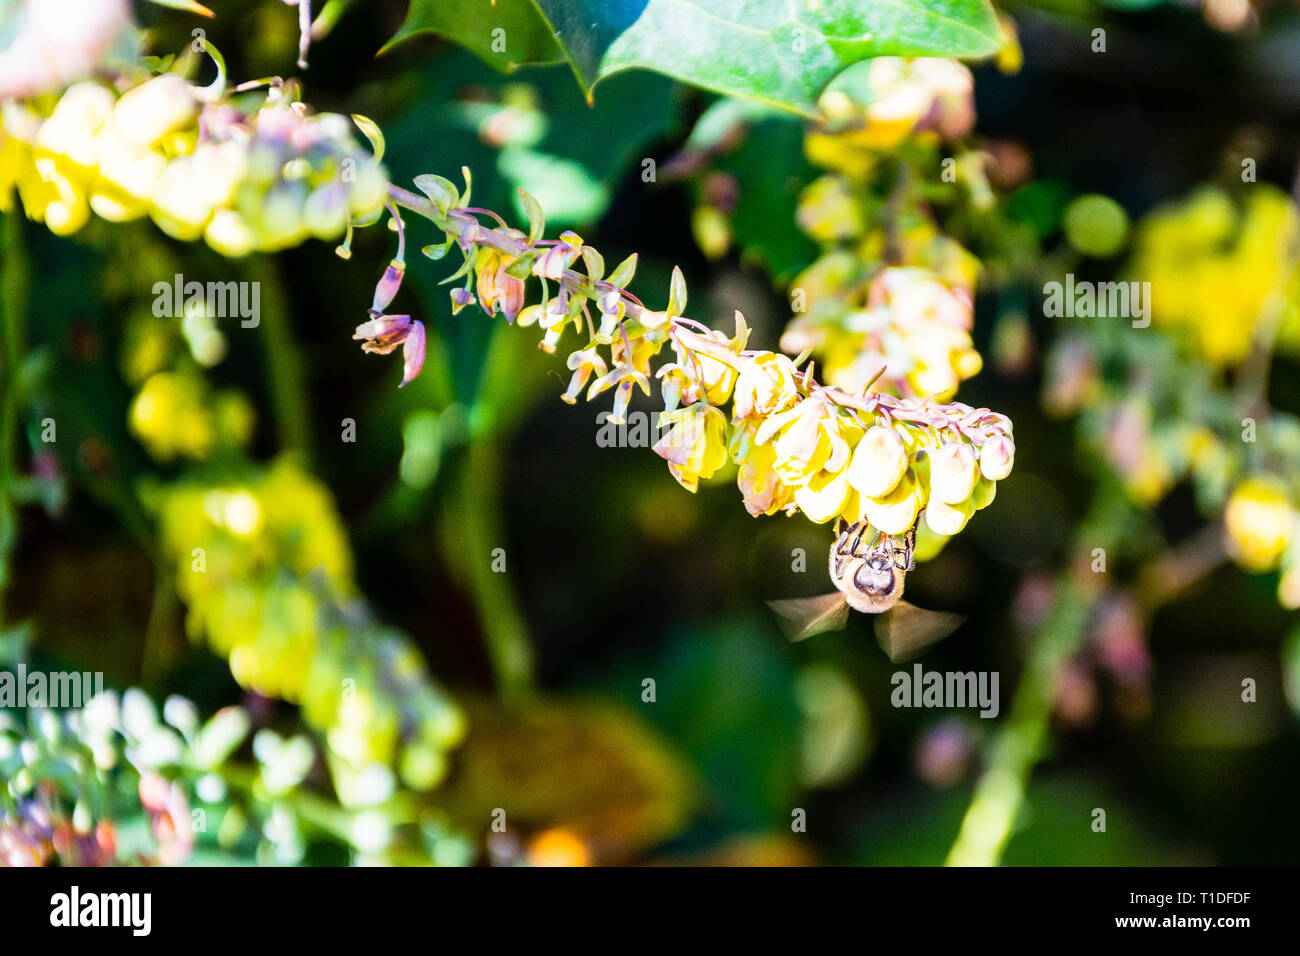 Yellow Mahonia flowers with an early spring honey bee Apis mellifera feeding with wings blurred from movement Stock Photo